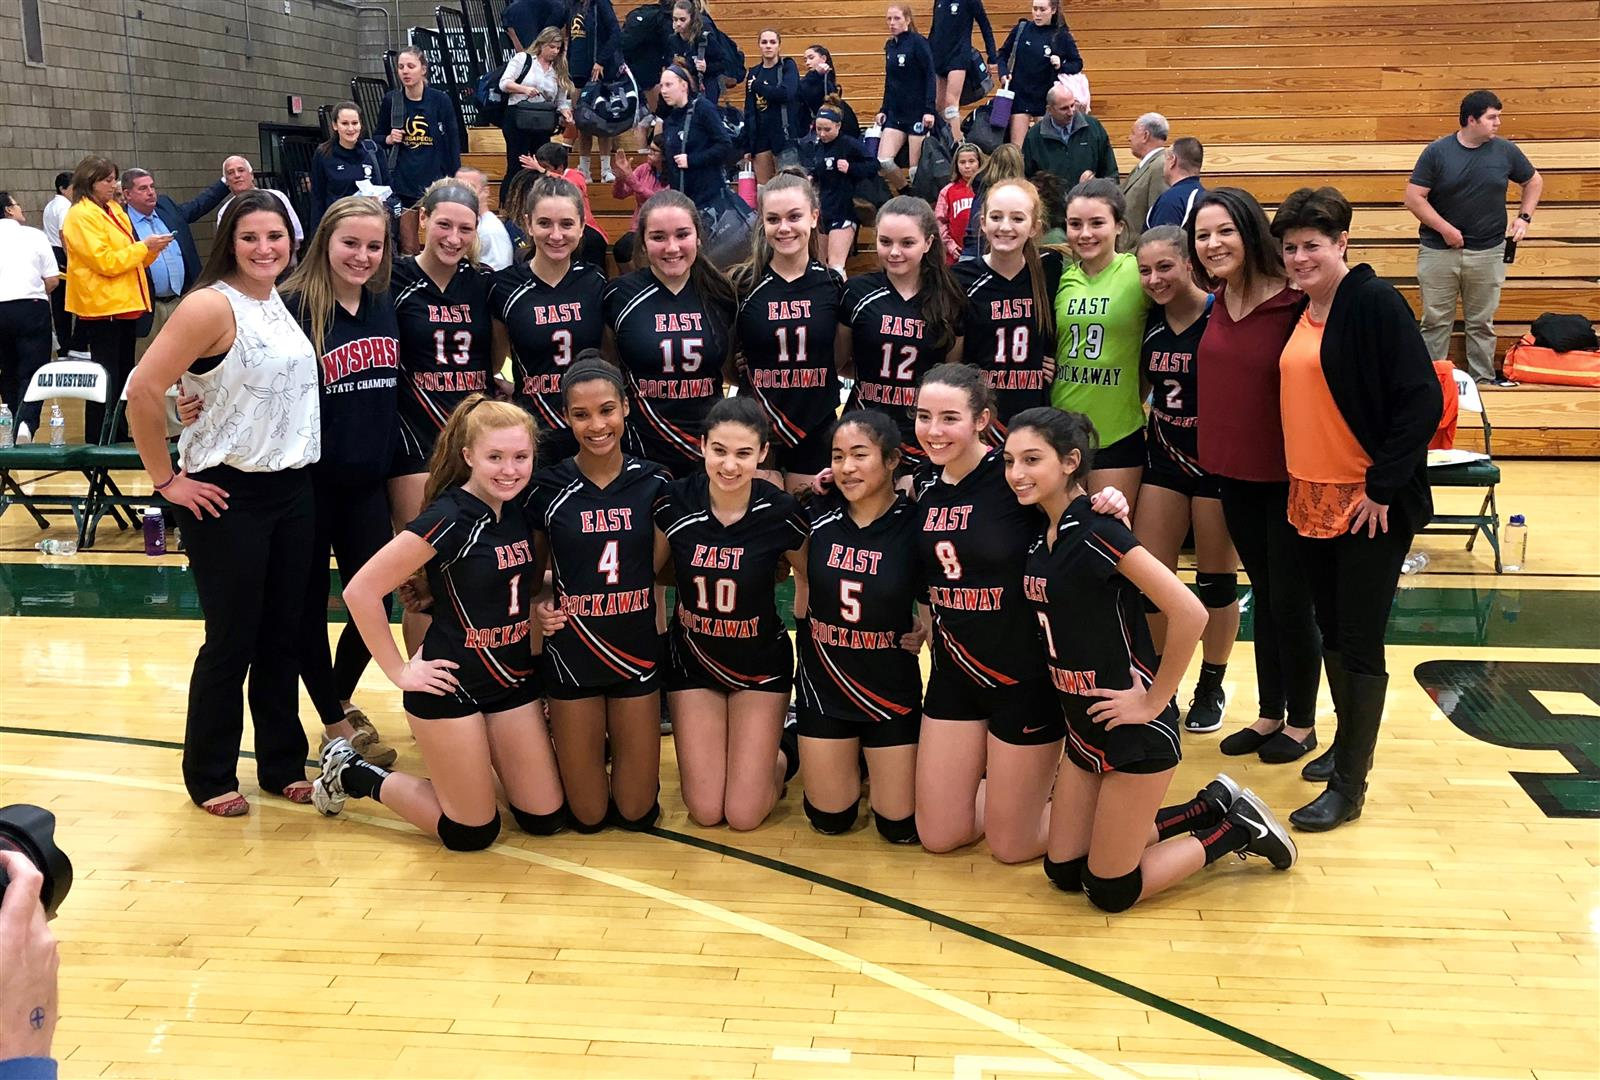 Girls Volleyball Team are Nassau County Champions